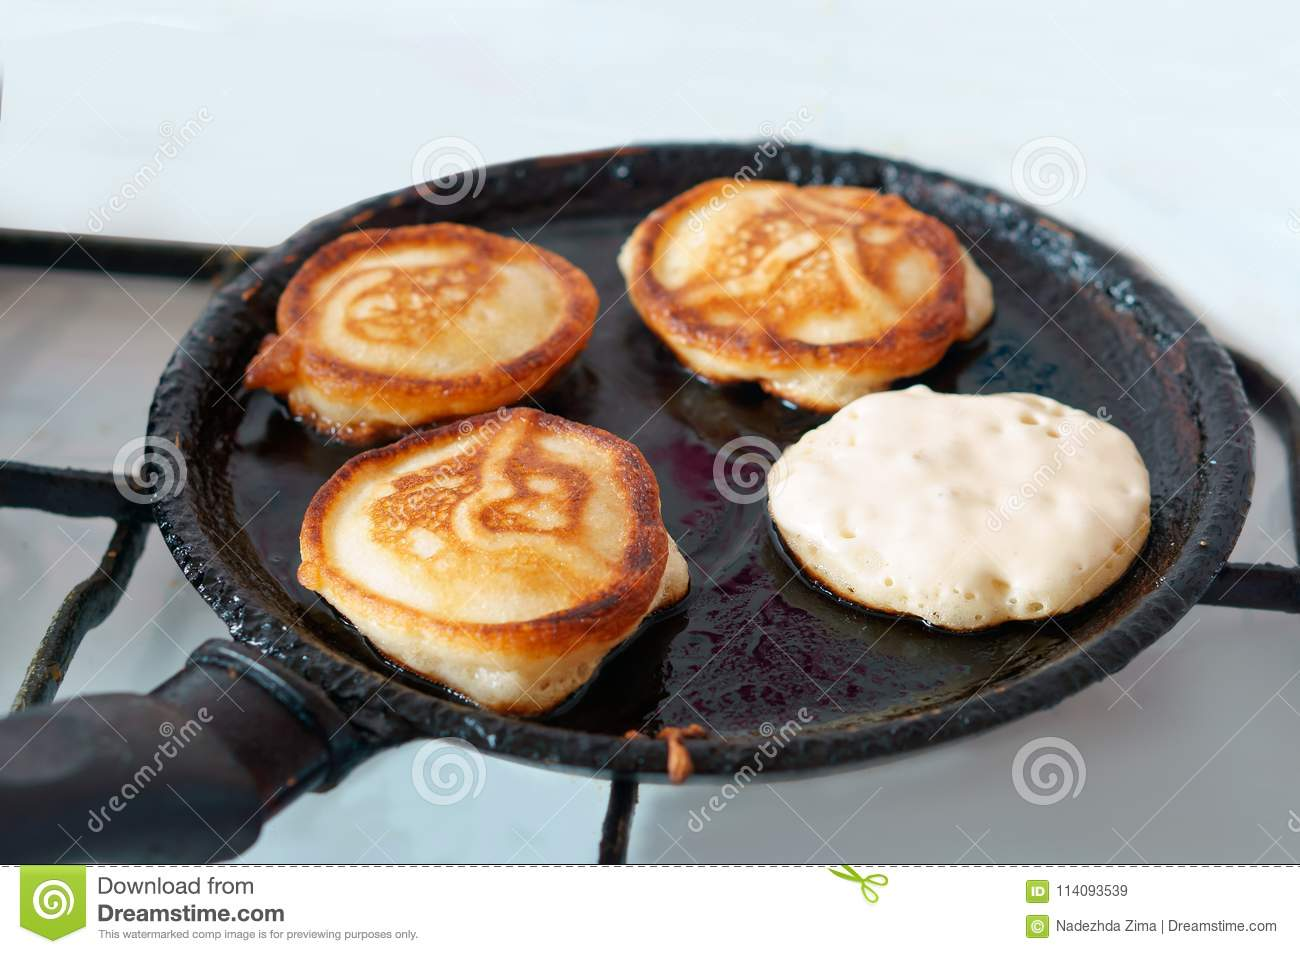 Pancakes are fried in a frying pan, four pancakes are cooked in oil on a frying pan